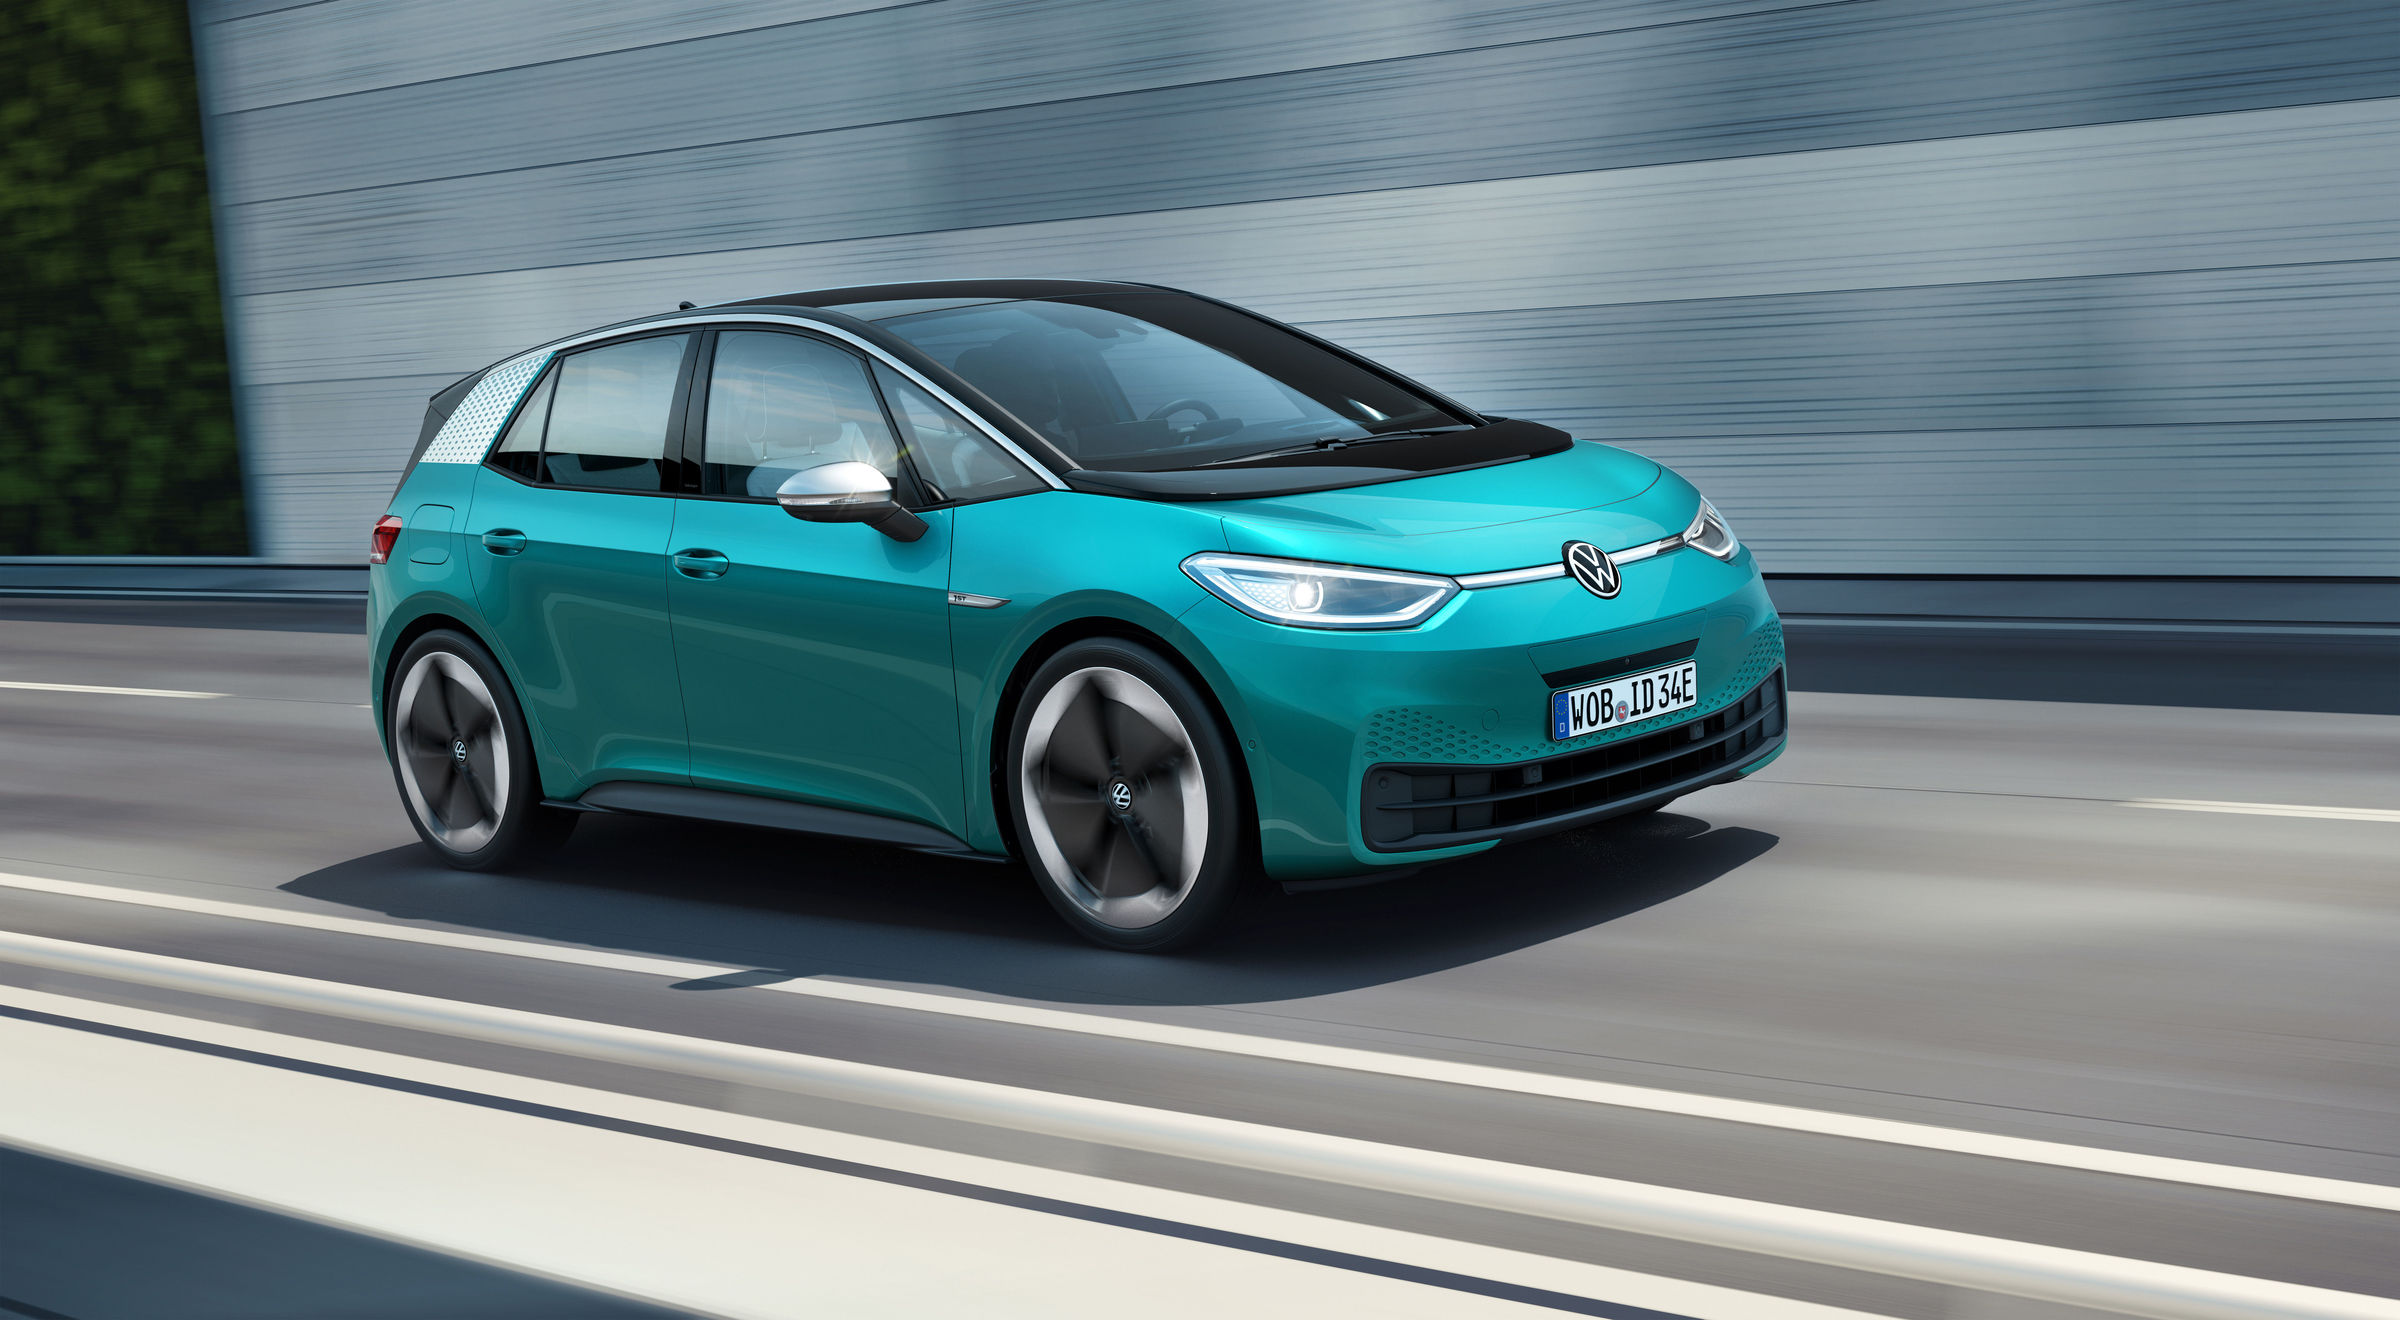 Volkswagen premieres its first pure EV, the ID.3